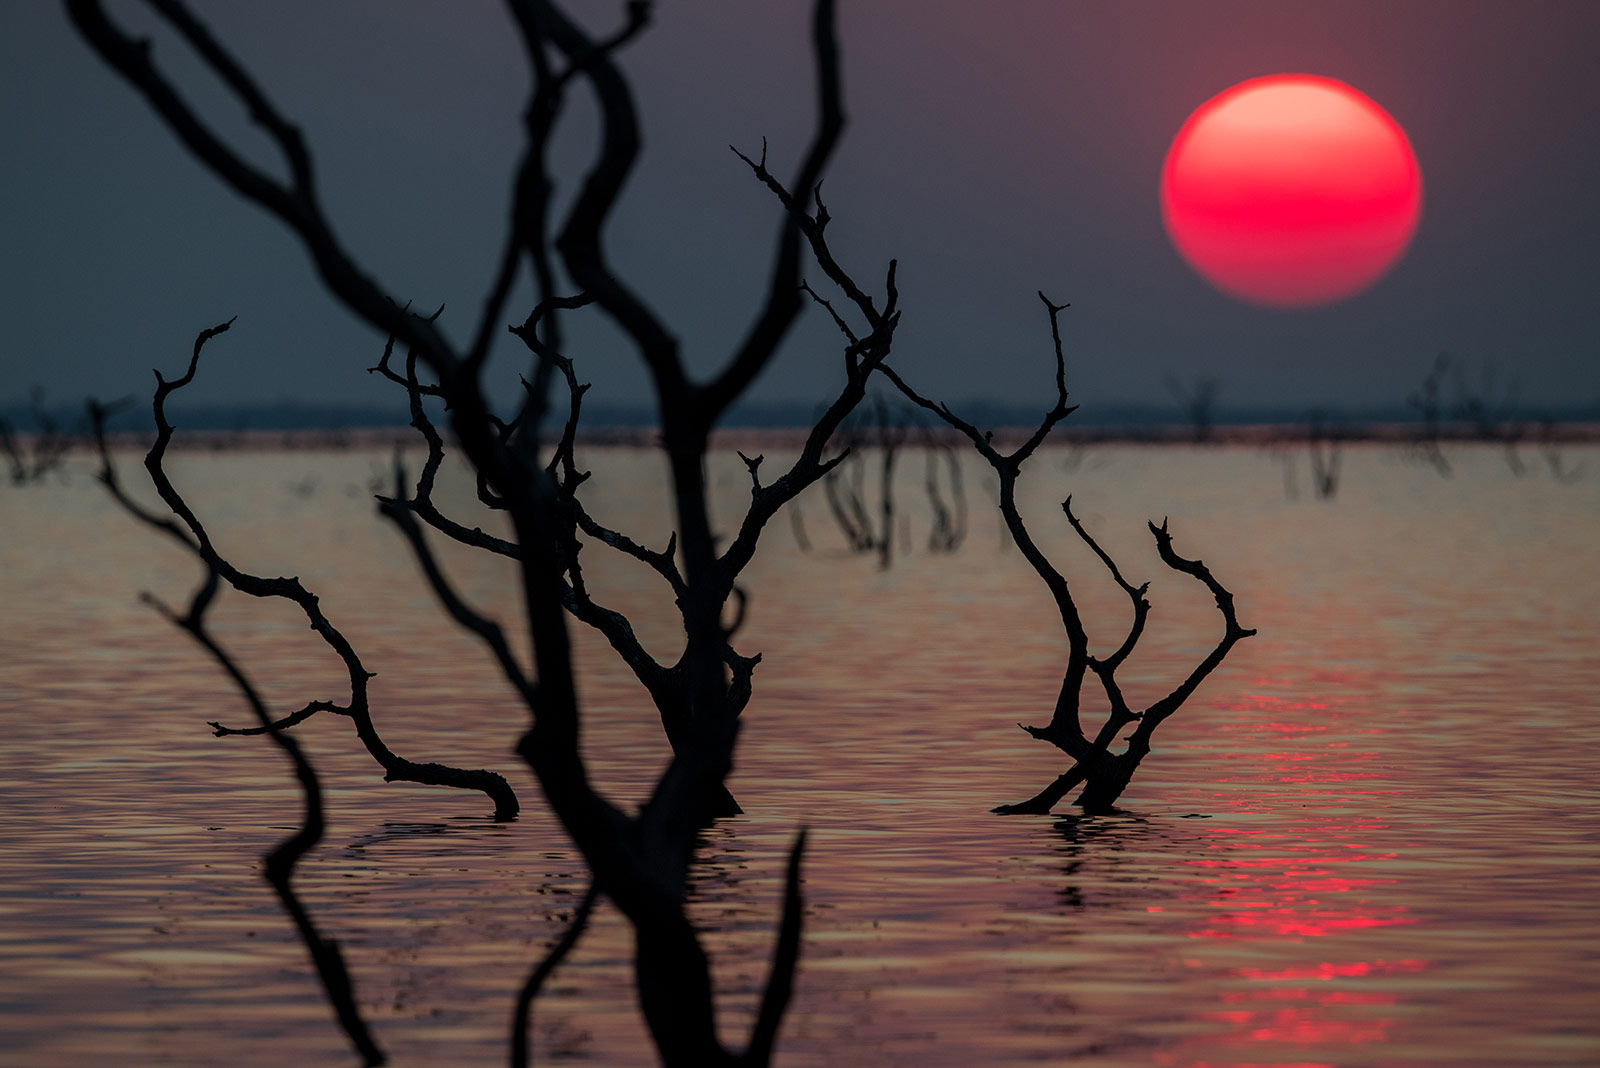 Home: The Photographs - Home in Kafue #2, Kafue National Park Zambia, Africa